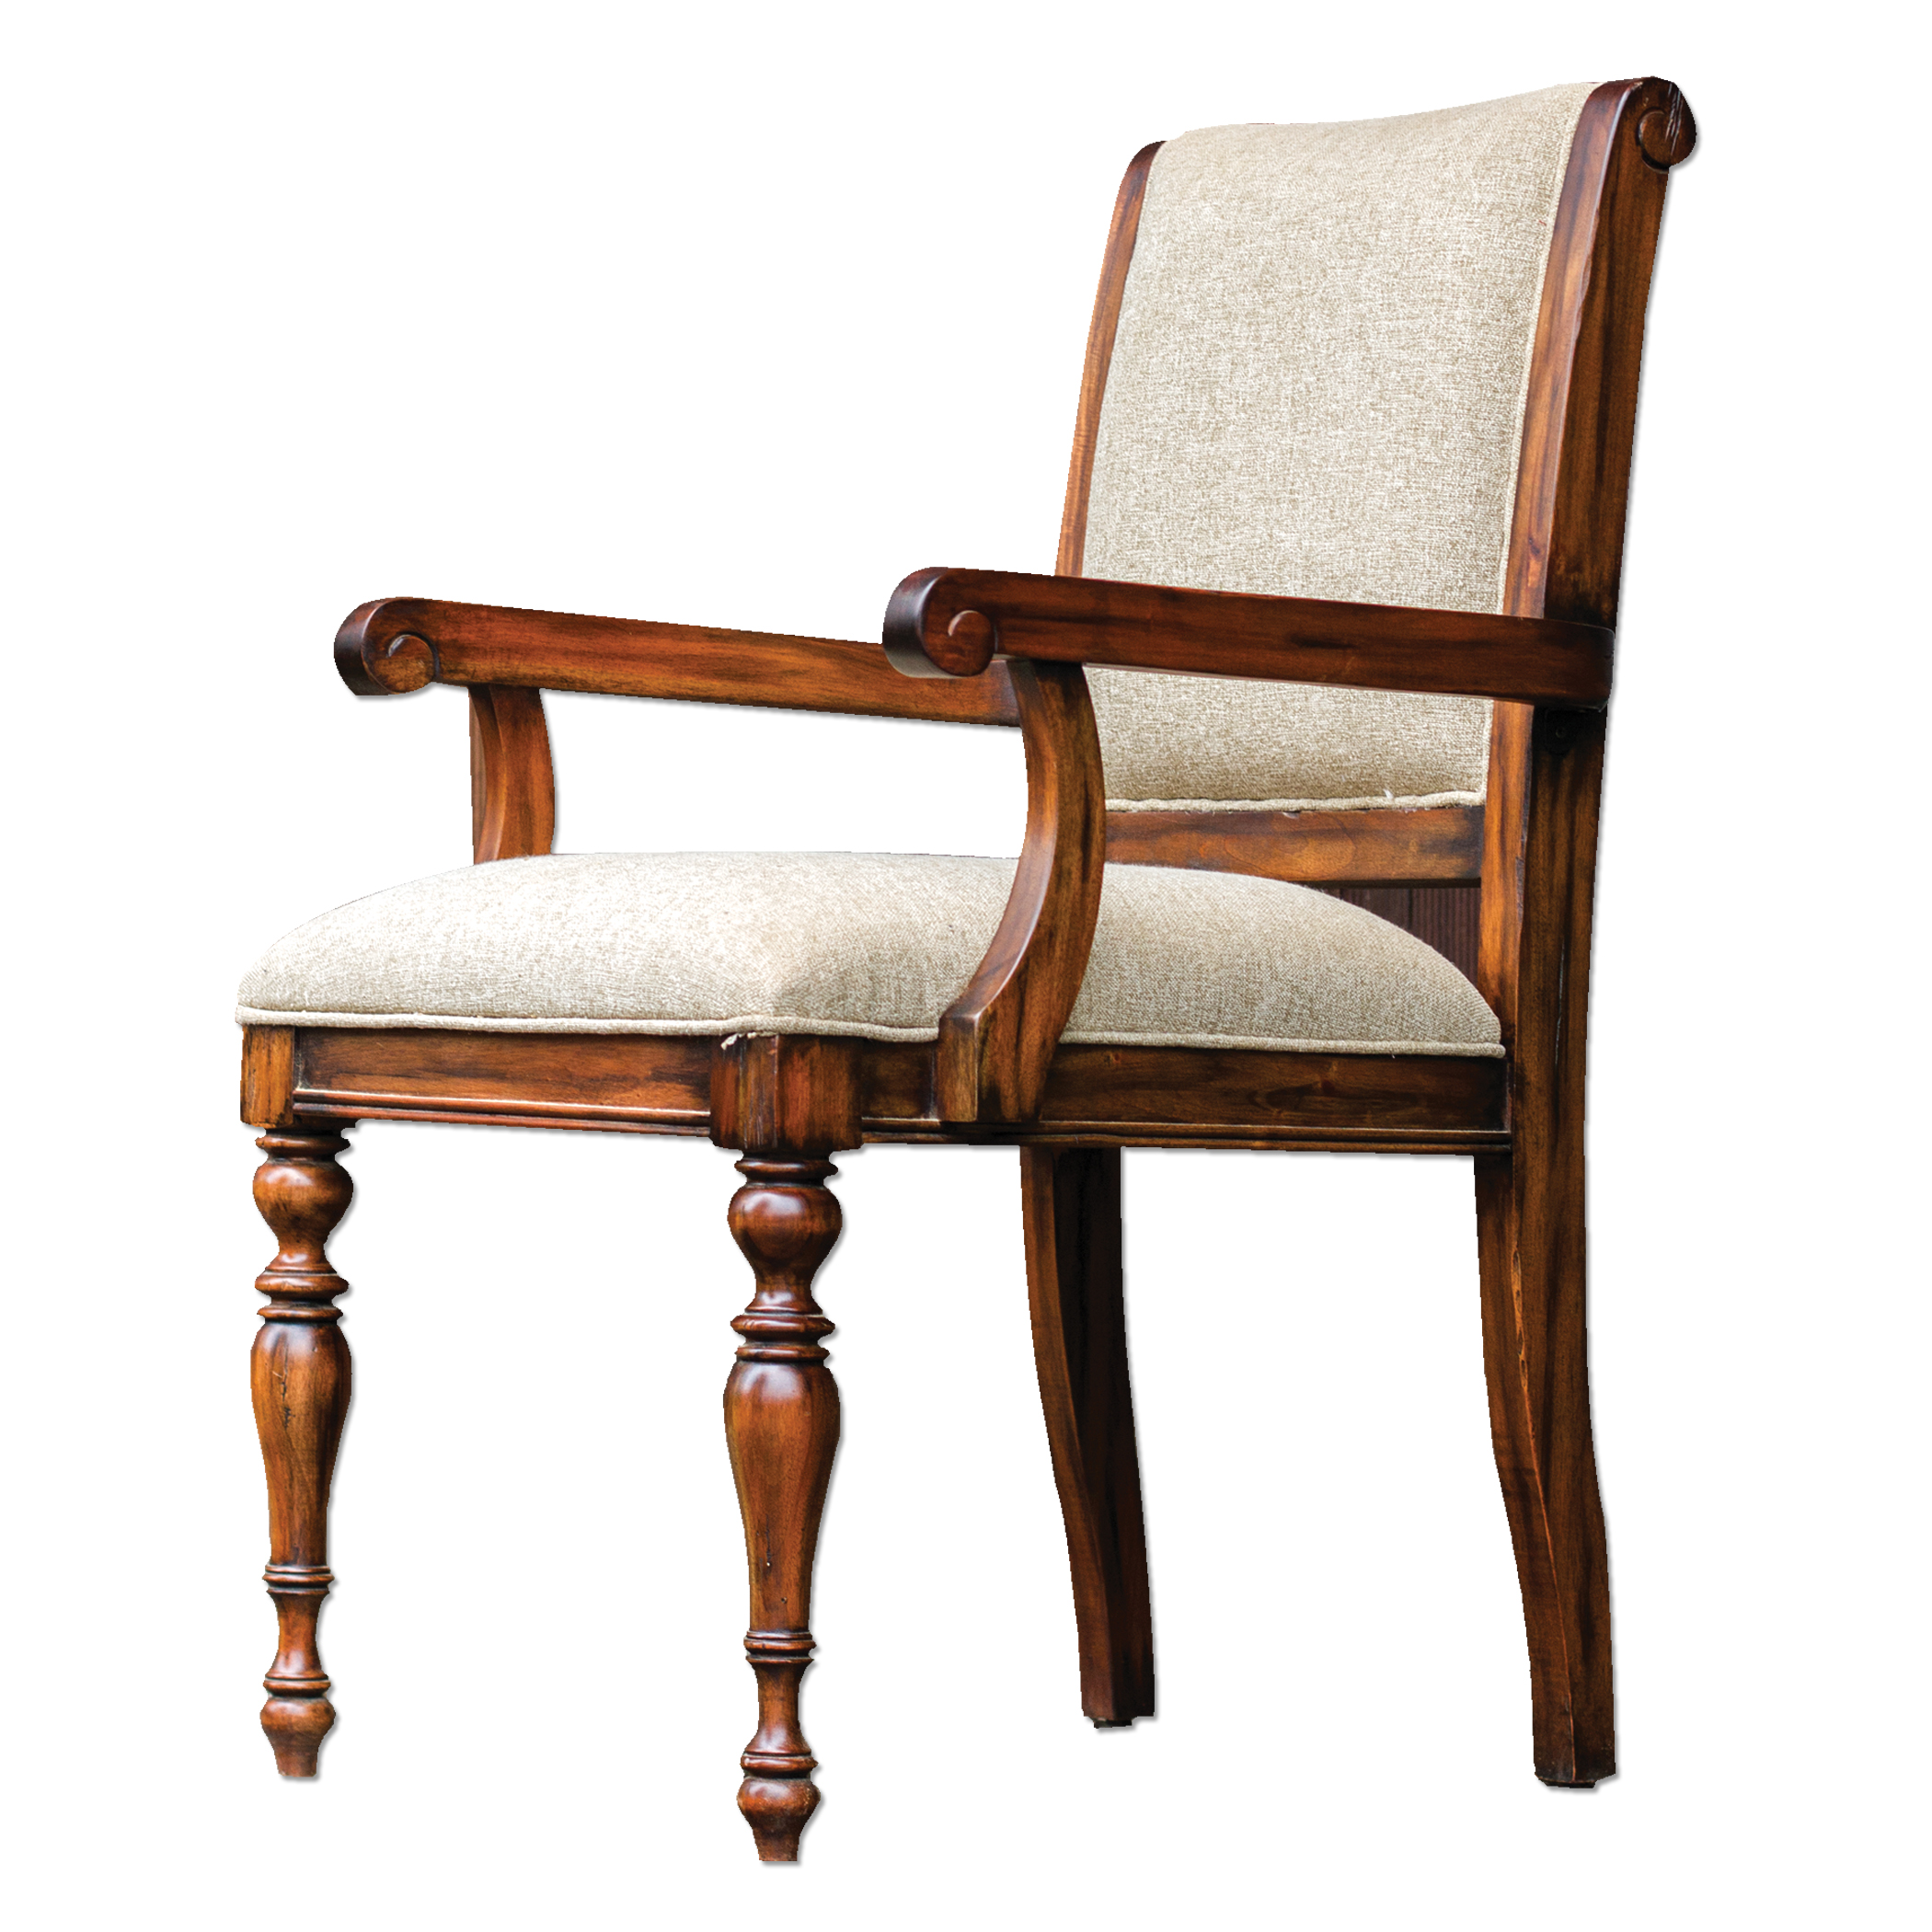 Uttermost Accent Furniture Danek Honey Stained Armchair - Item Number: 23648